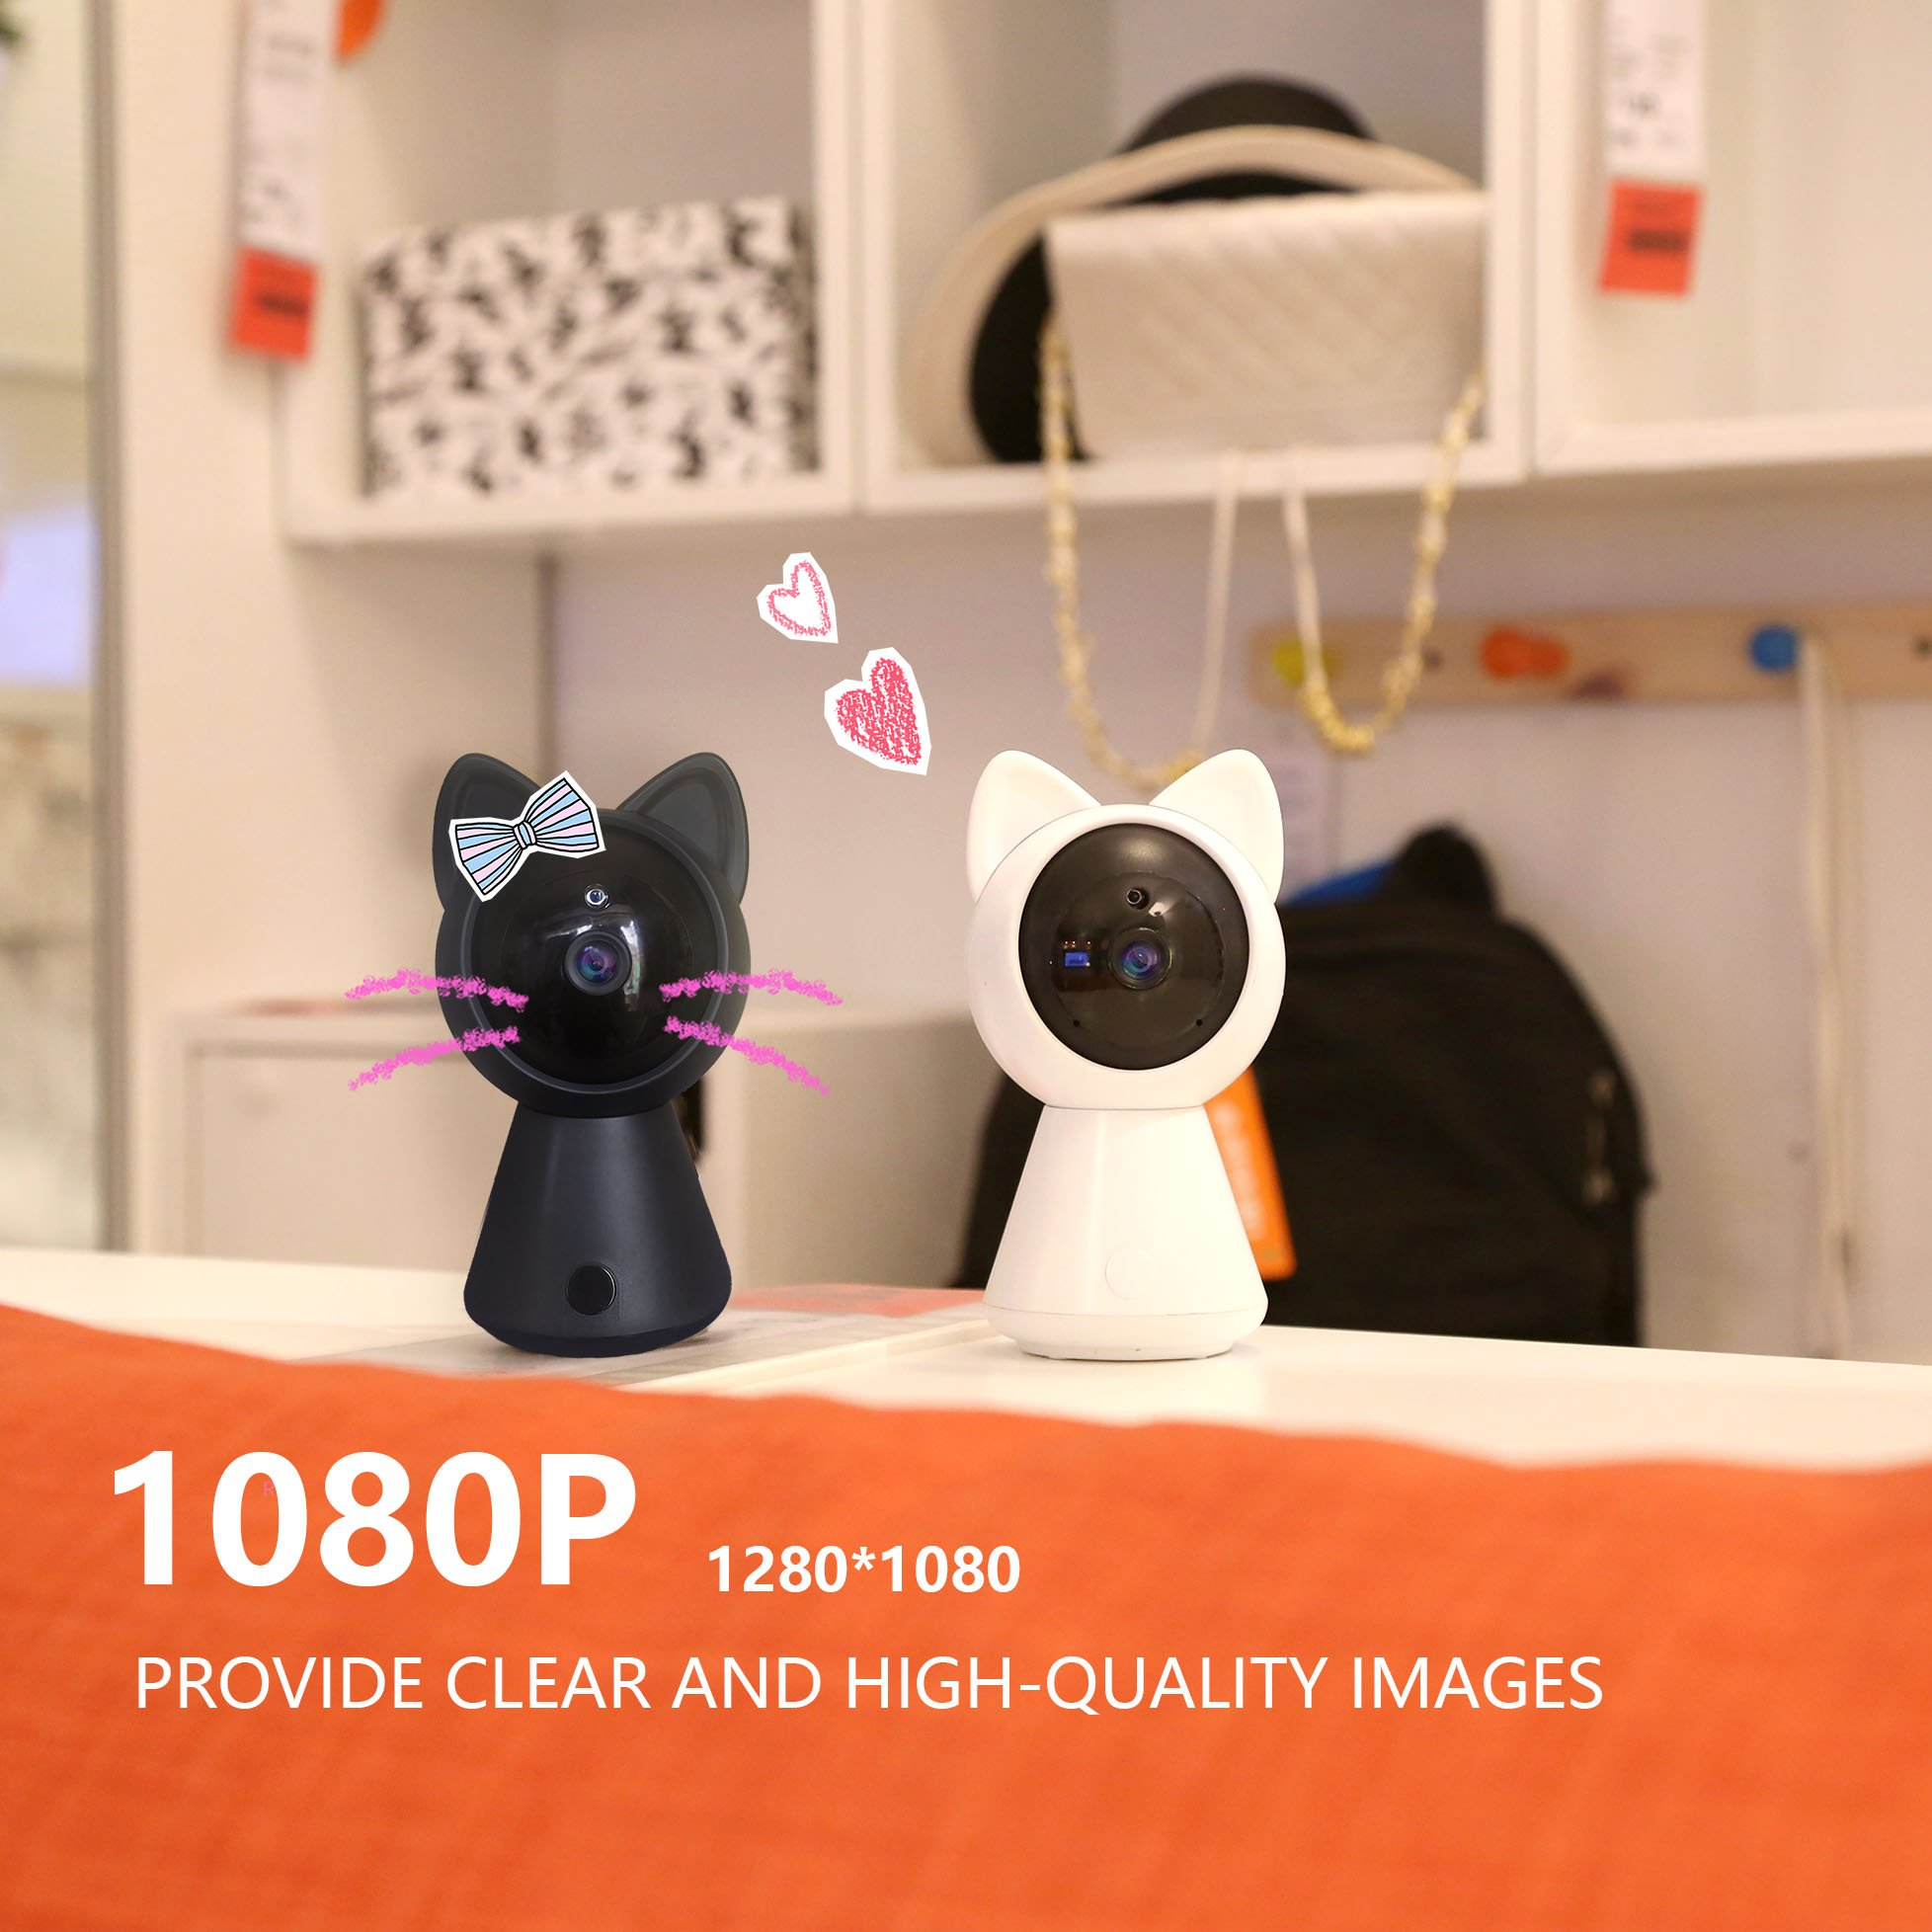 Pet IP Camera WiFi Cam HD 1080P Cute Cat camera Home Security Surveillance Wireless System Dome Camera Nanny Baby Cam Indoor Monitor Pan/Tilt with Night Vision 2-Way Audio Motion Detection alarm B by LUFASA (Image #7)